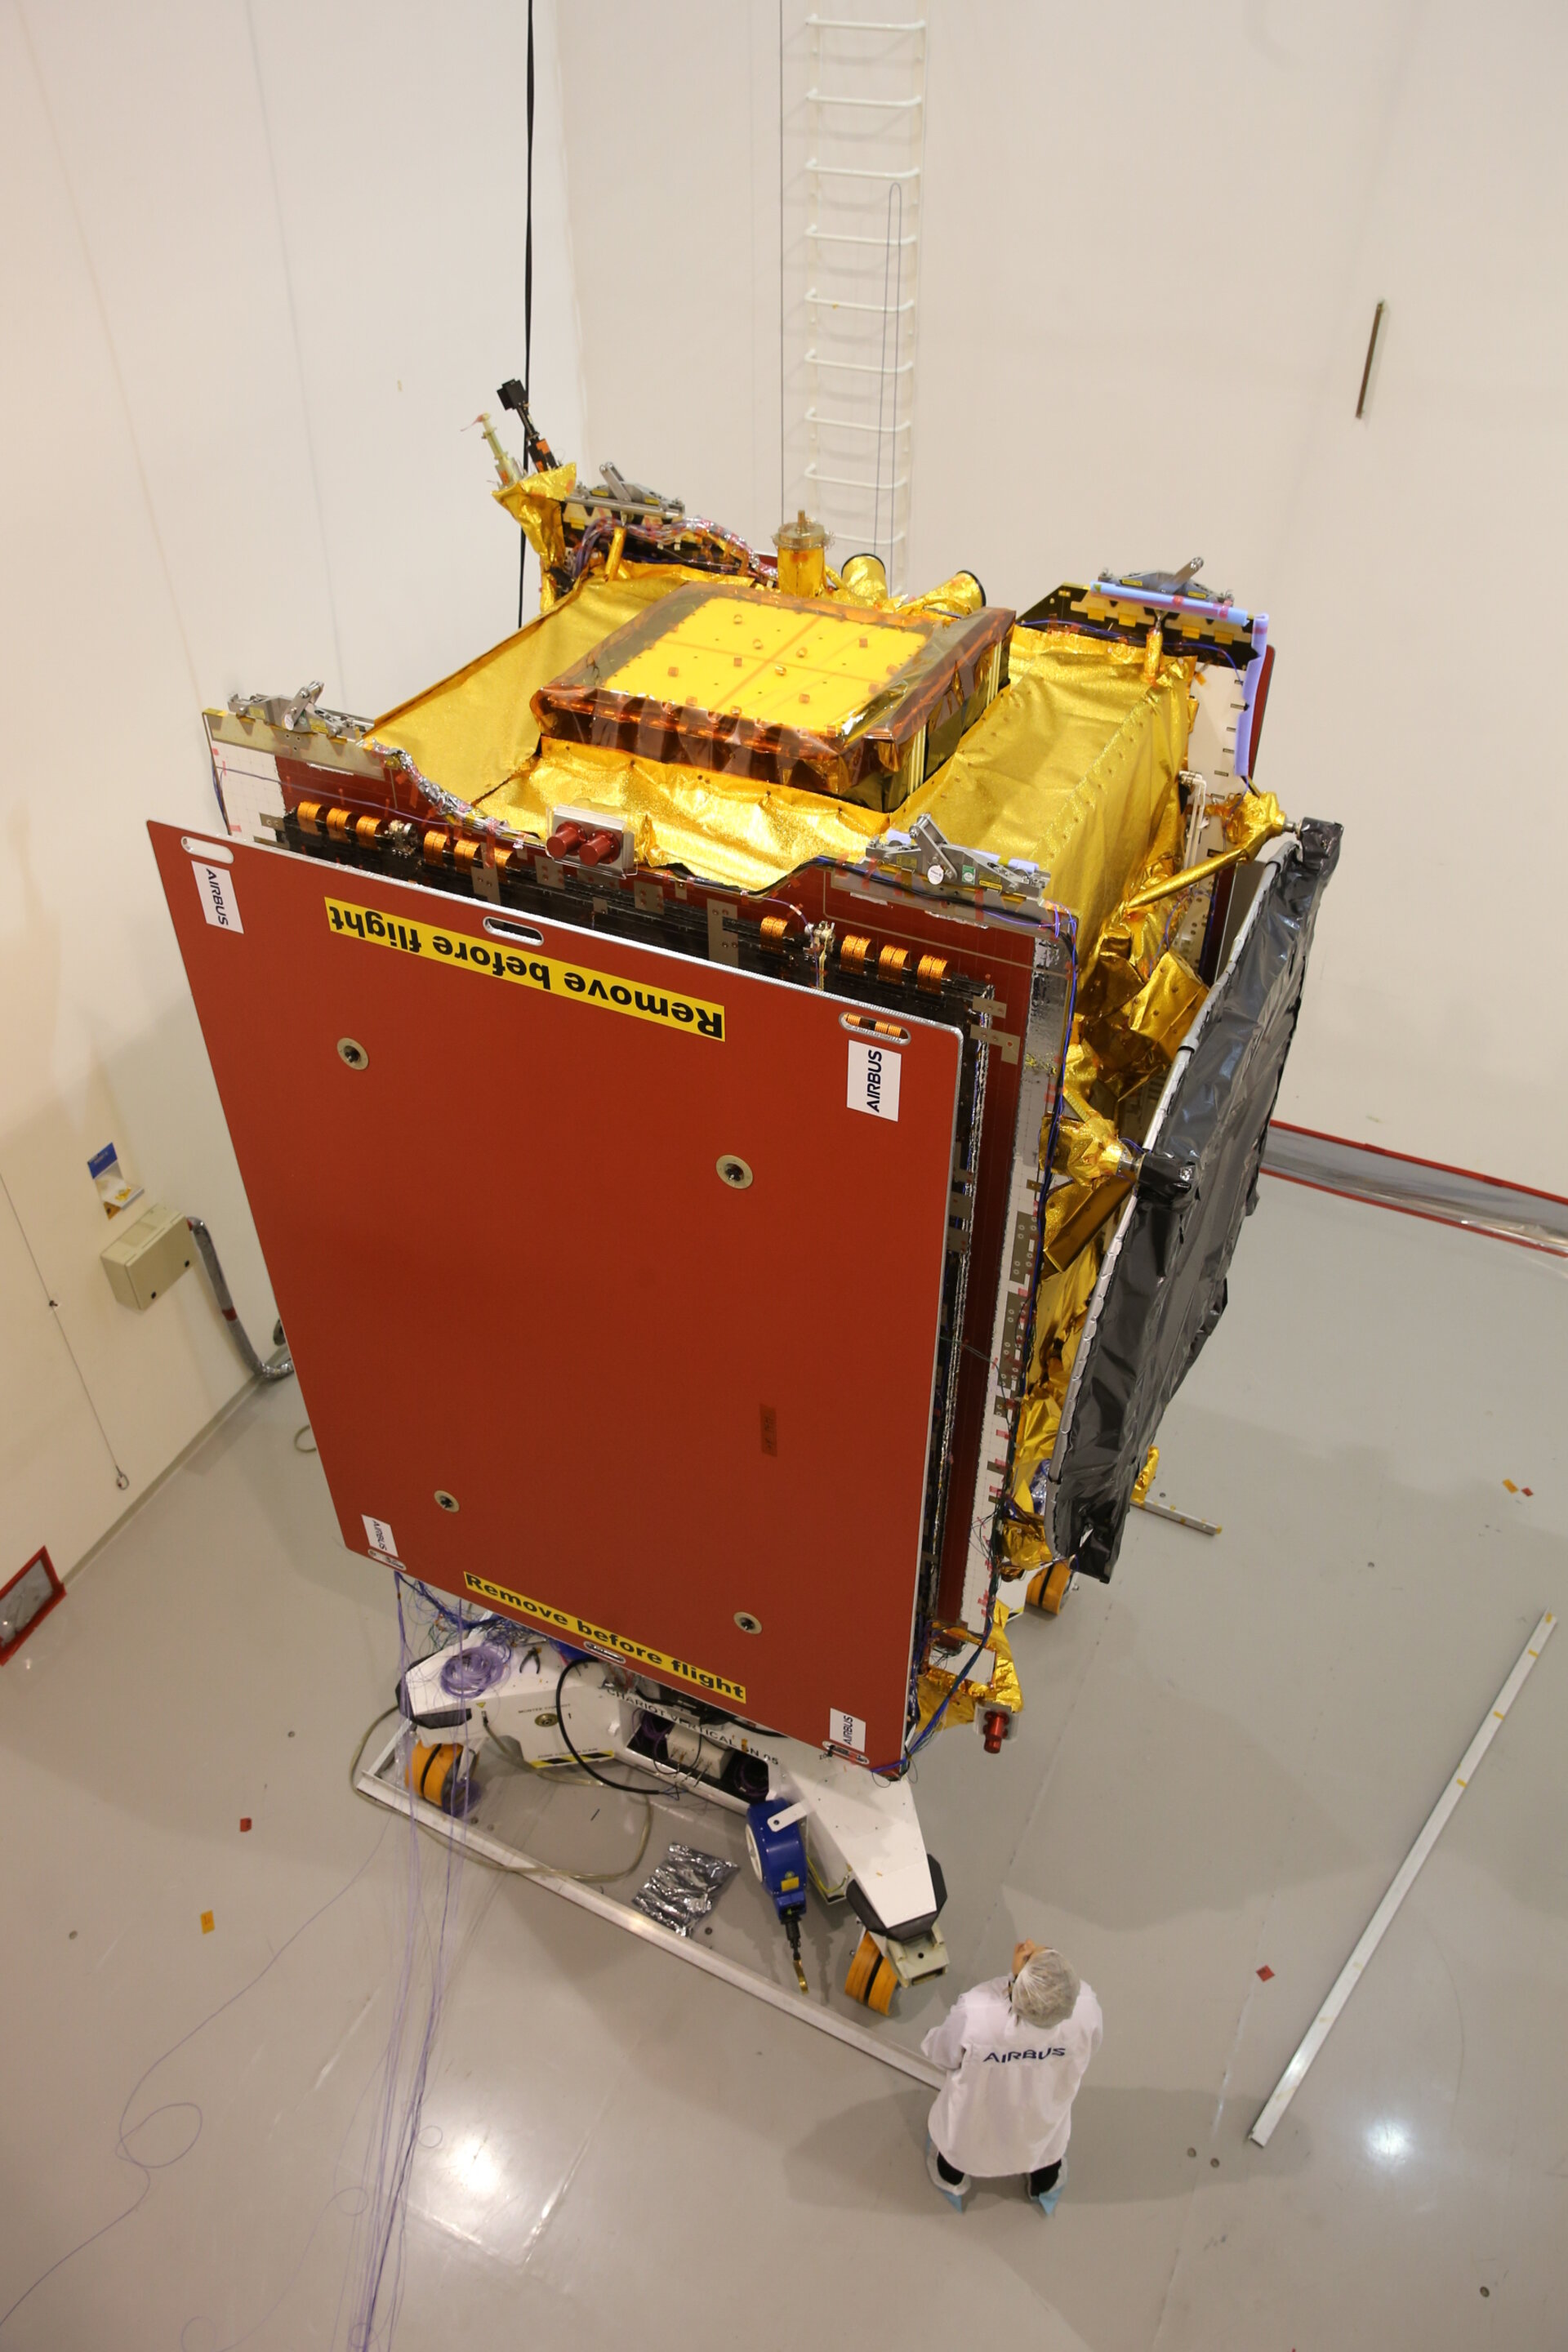 Quantum satellite at the mechanical test facility